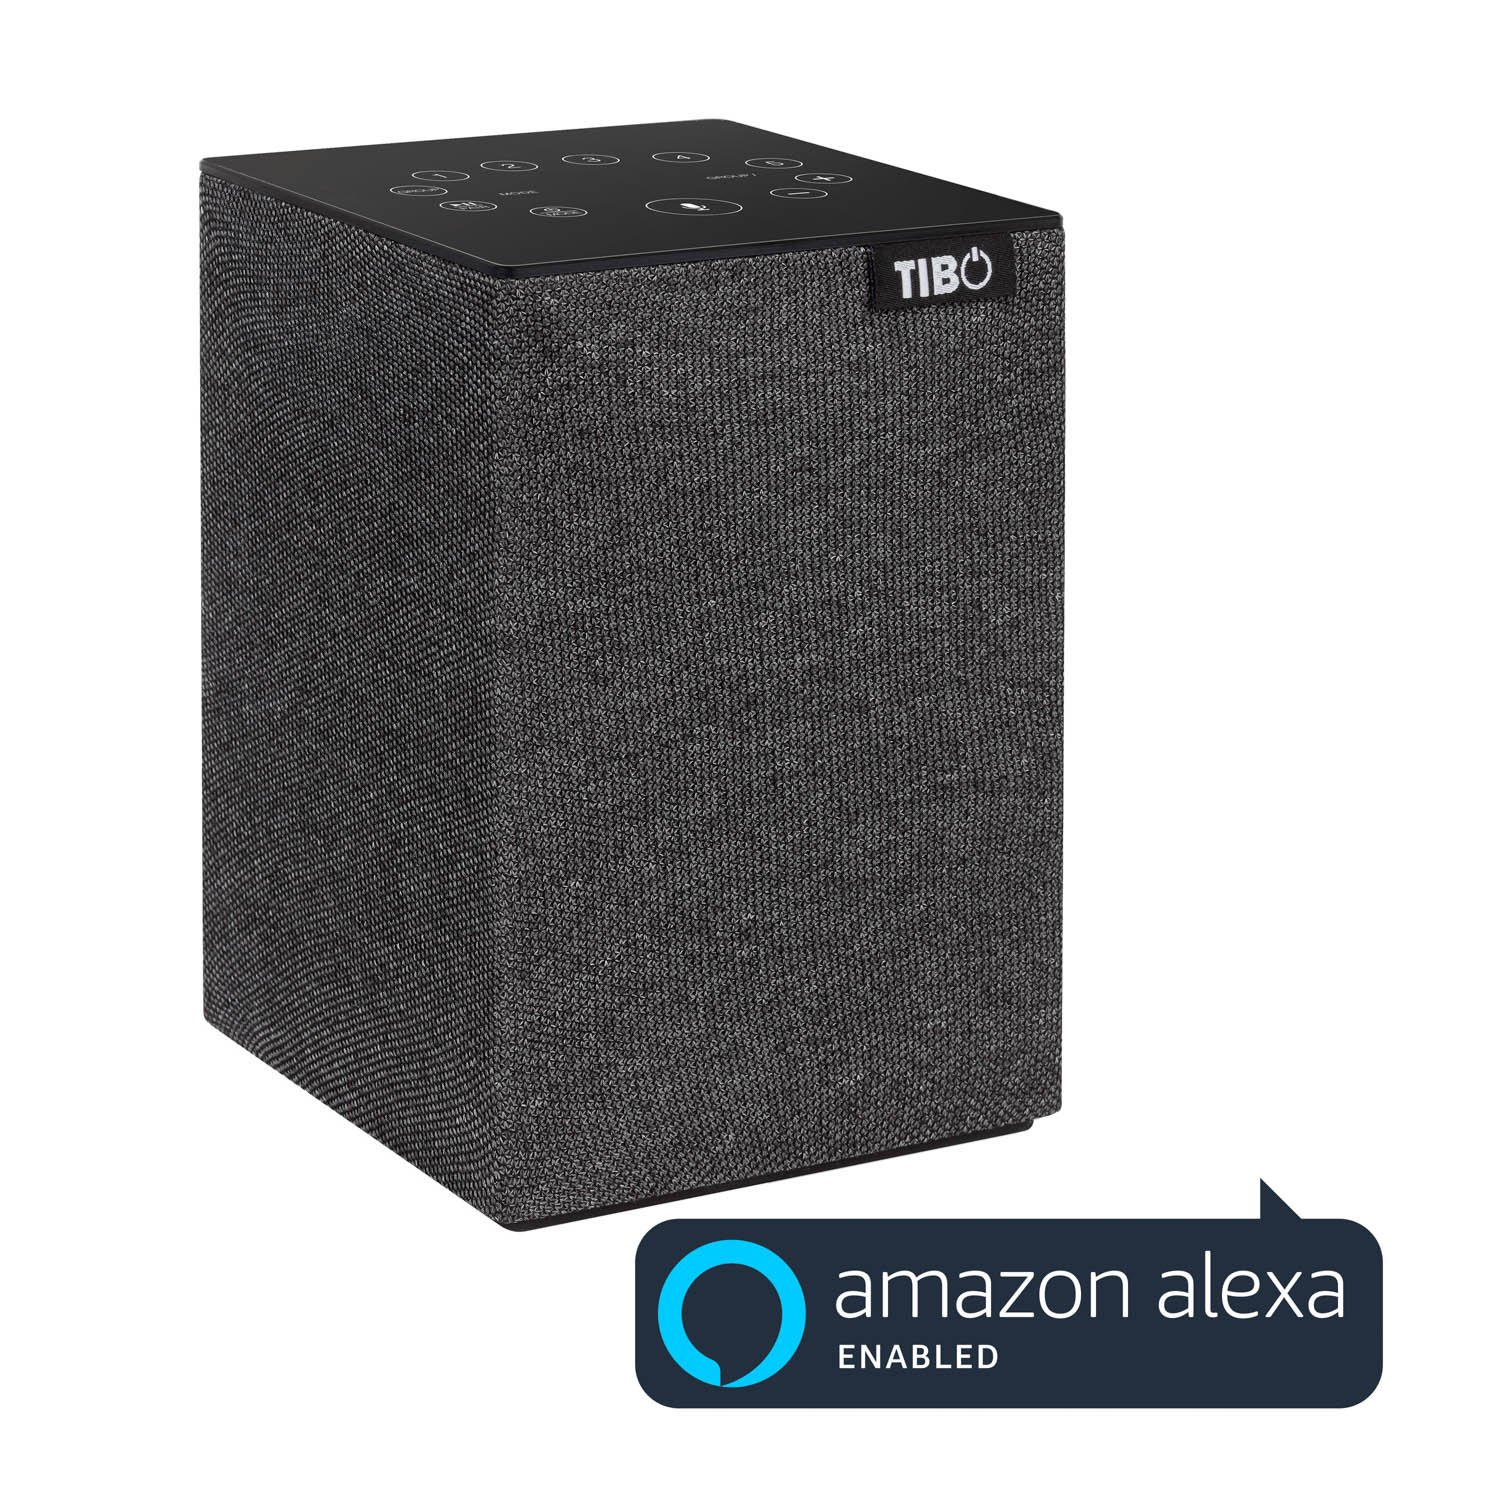 'Tibo Choros Tap Altavoz Multiplay Bluetooth/WiFi para iOS/Android Gris